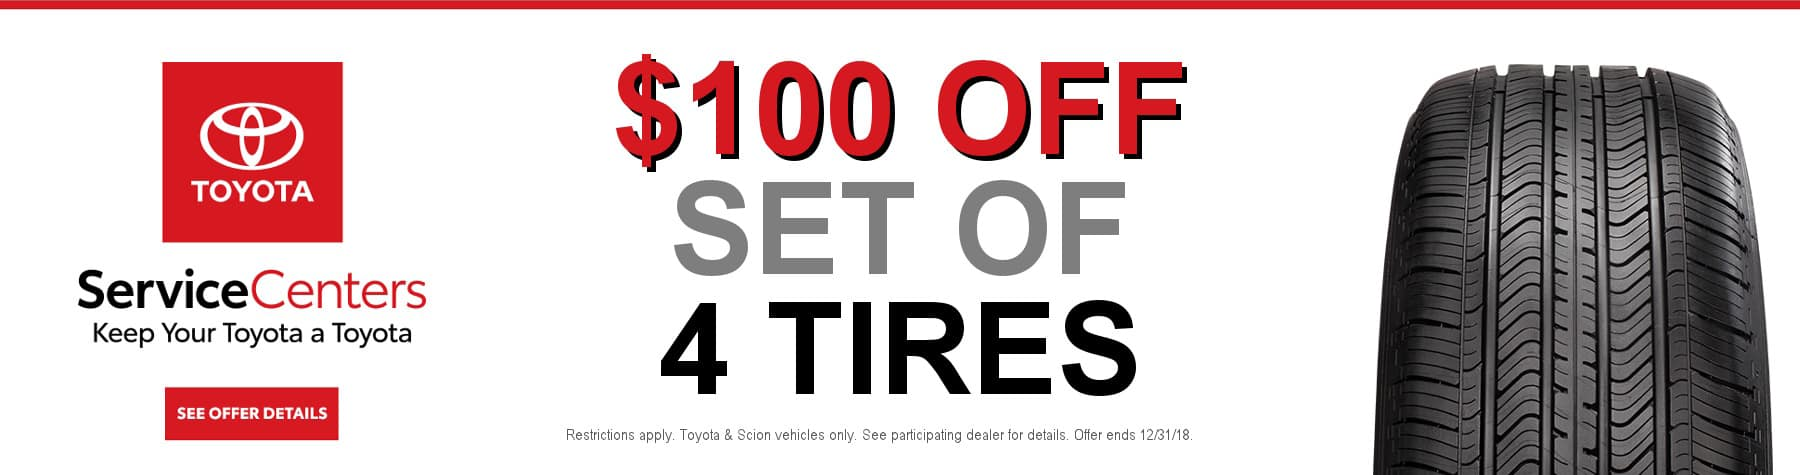 toyota service, tires, oil change, battery, brakes & more | st. paul, mn